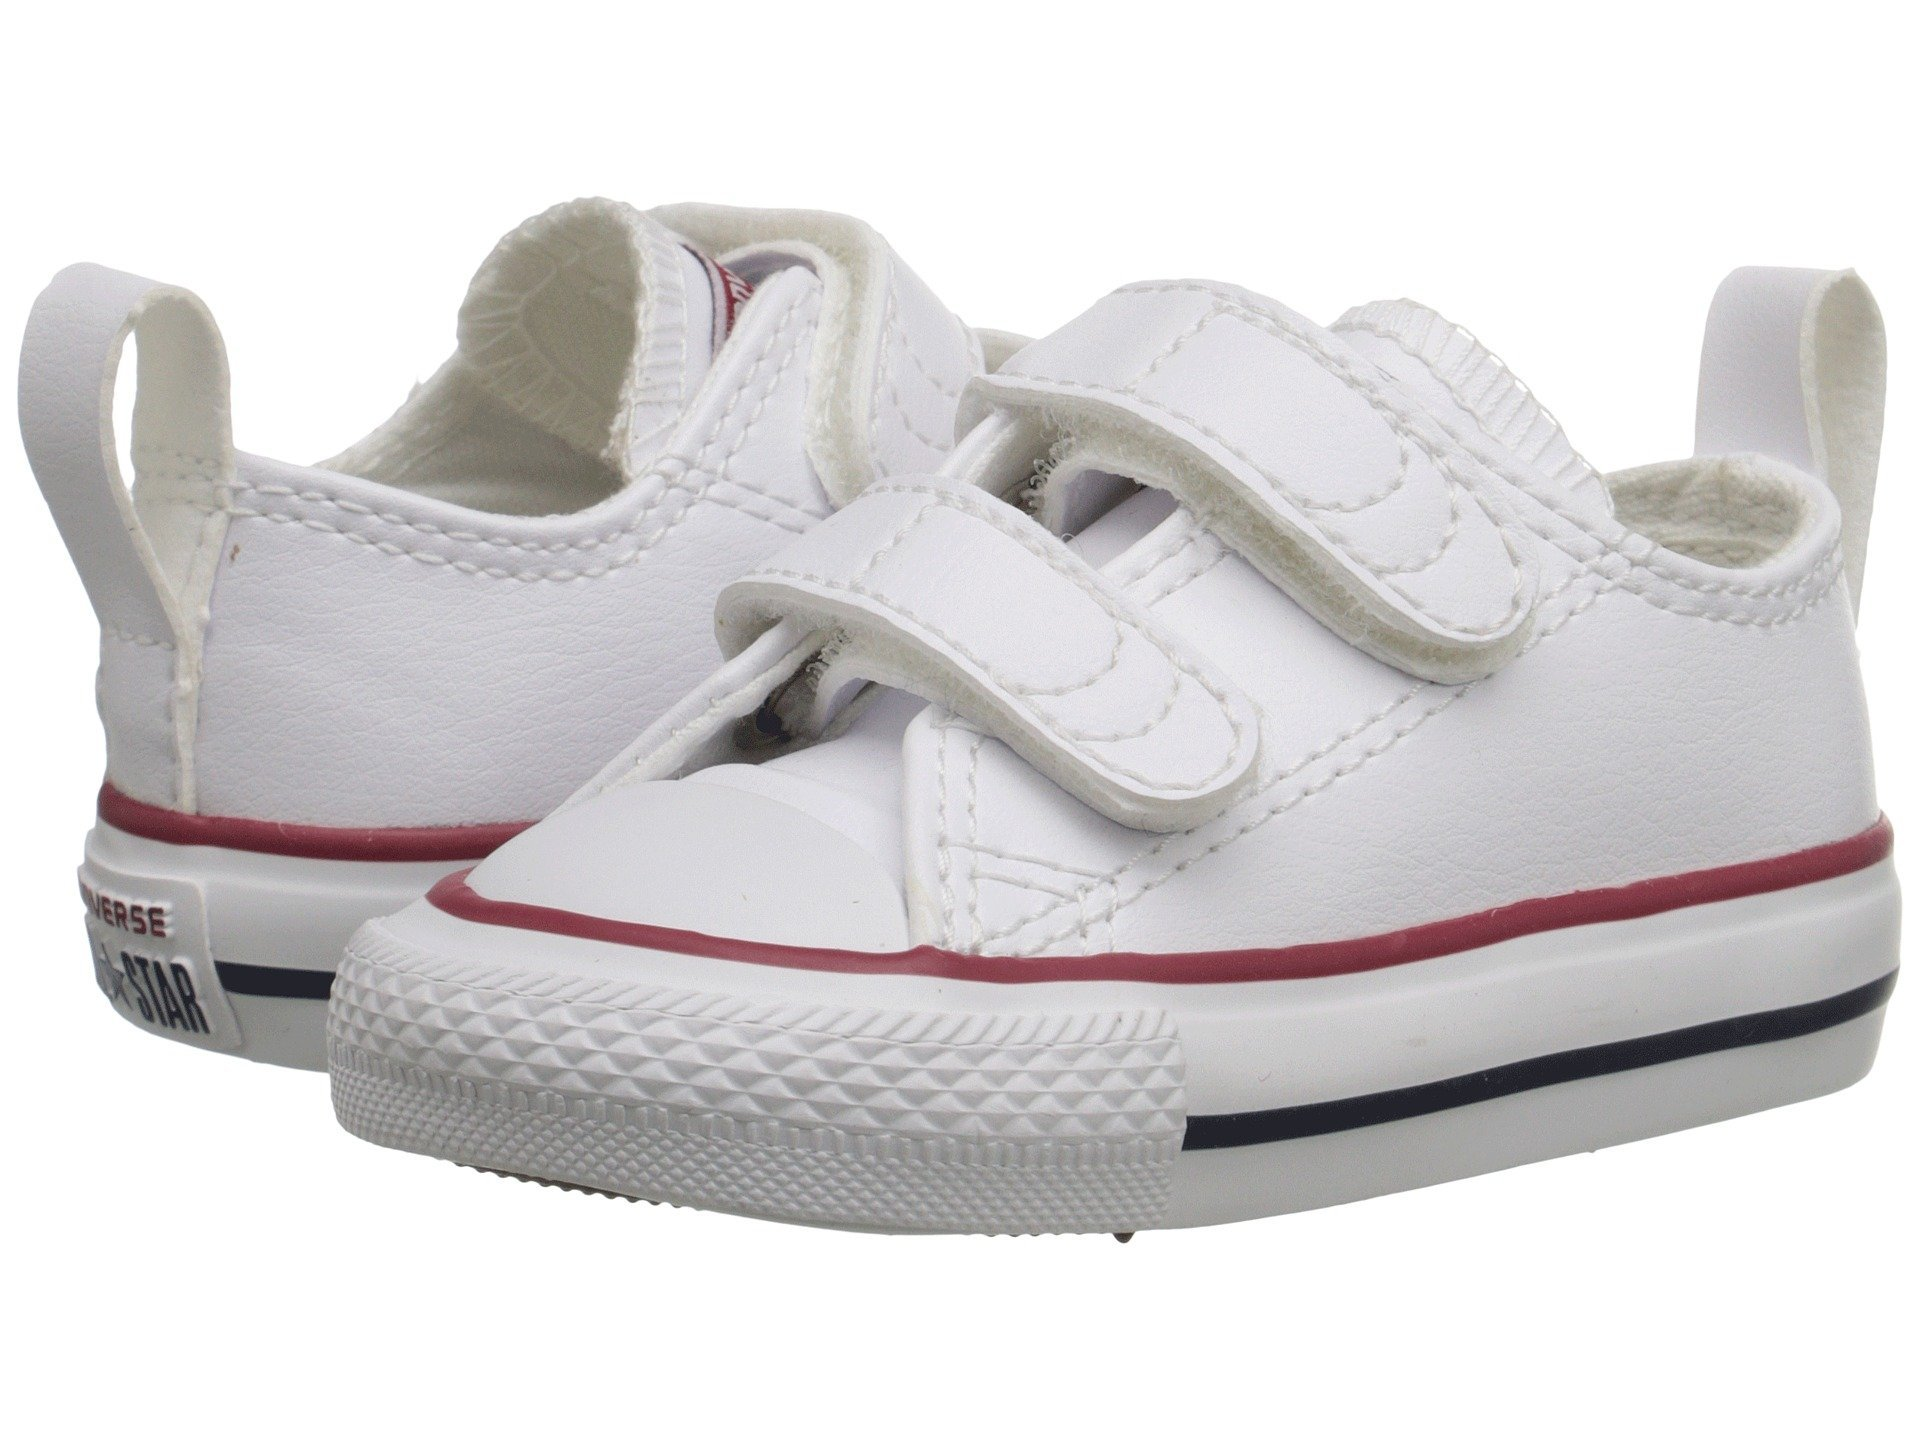 Converse Kids' Chuck Taylor All Star 2v Low Top Sneaker (4 M US Toddler, White Leather)